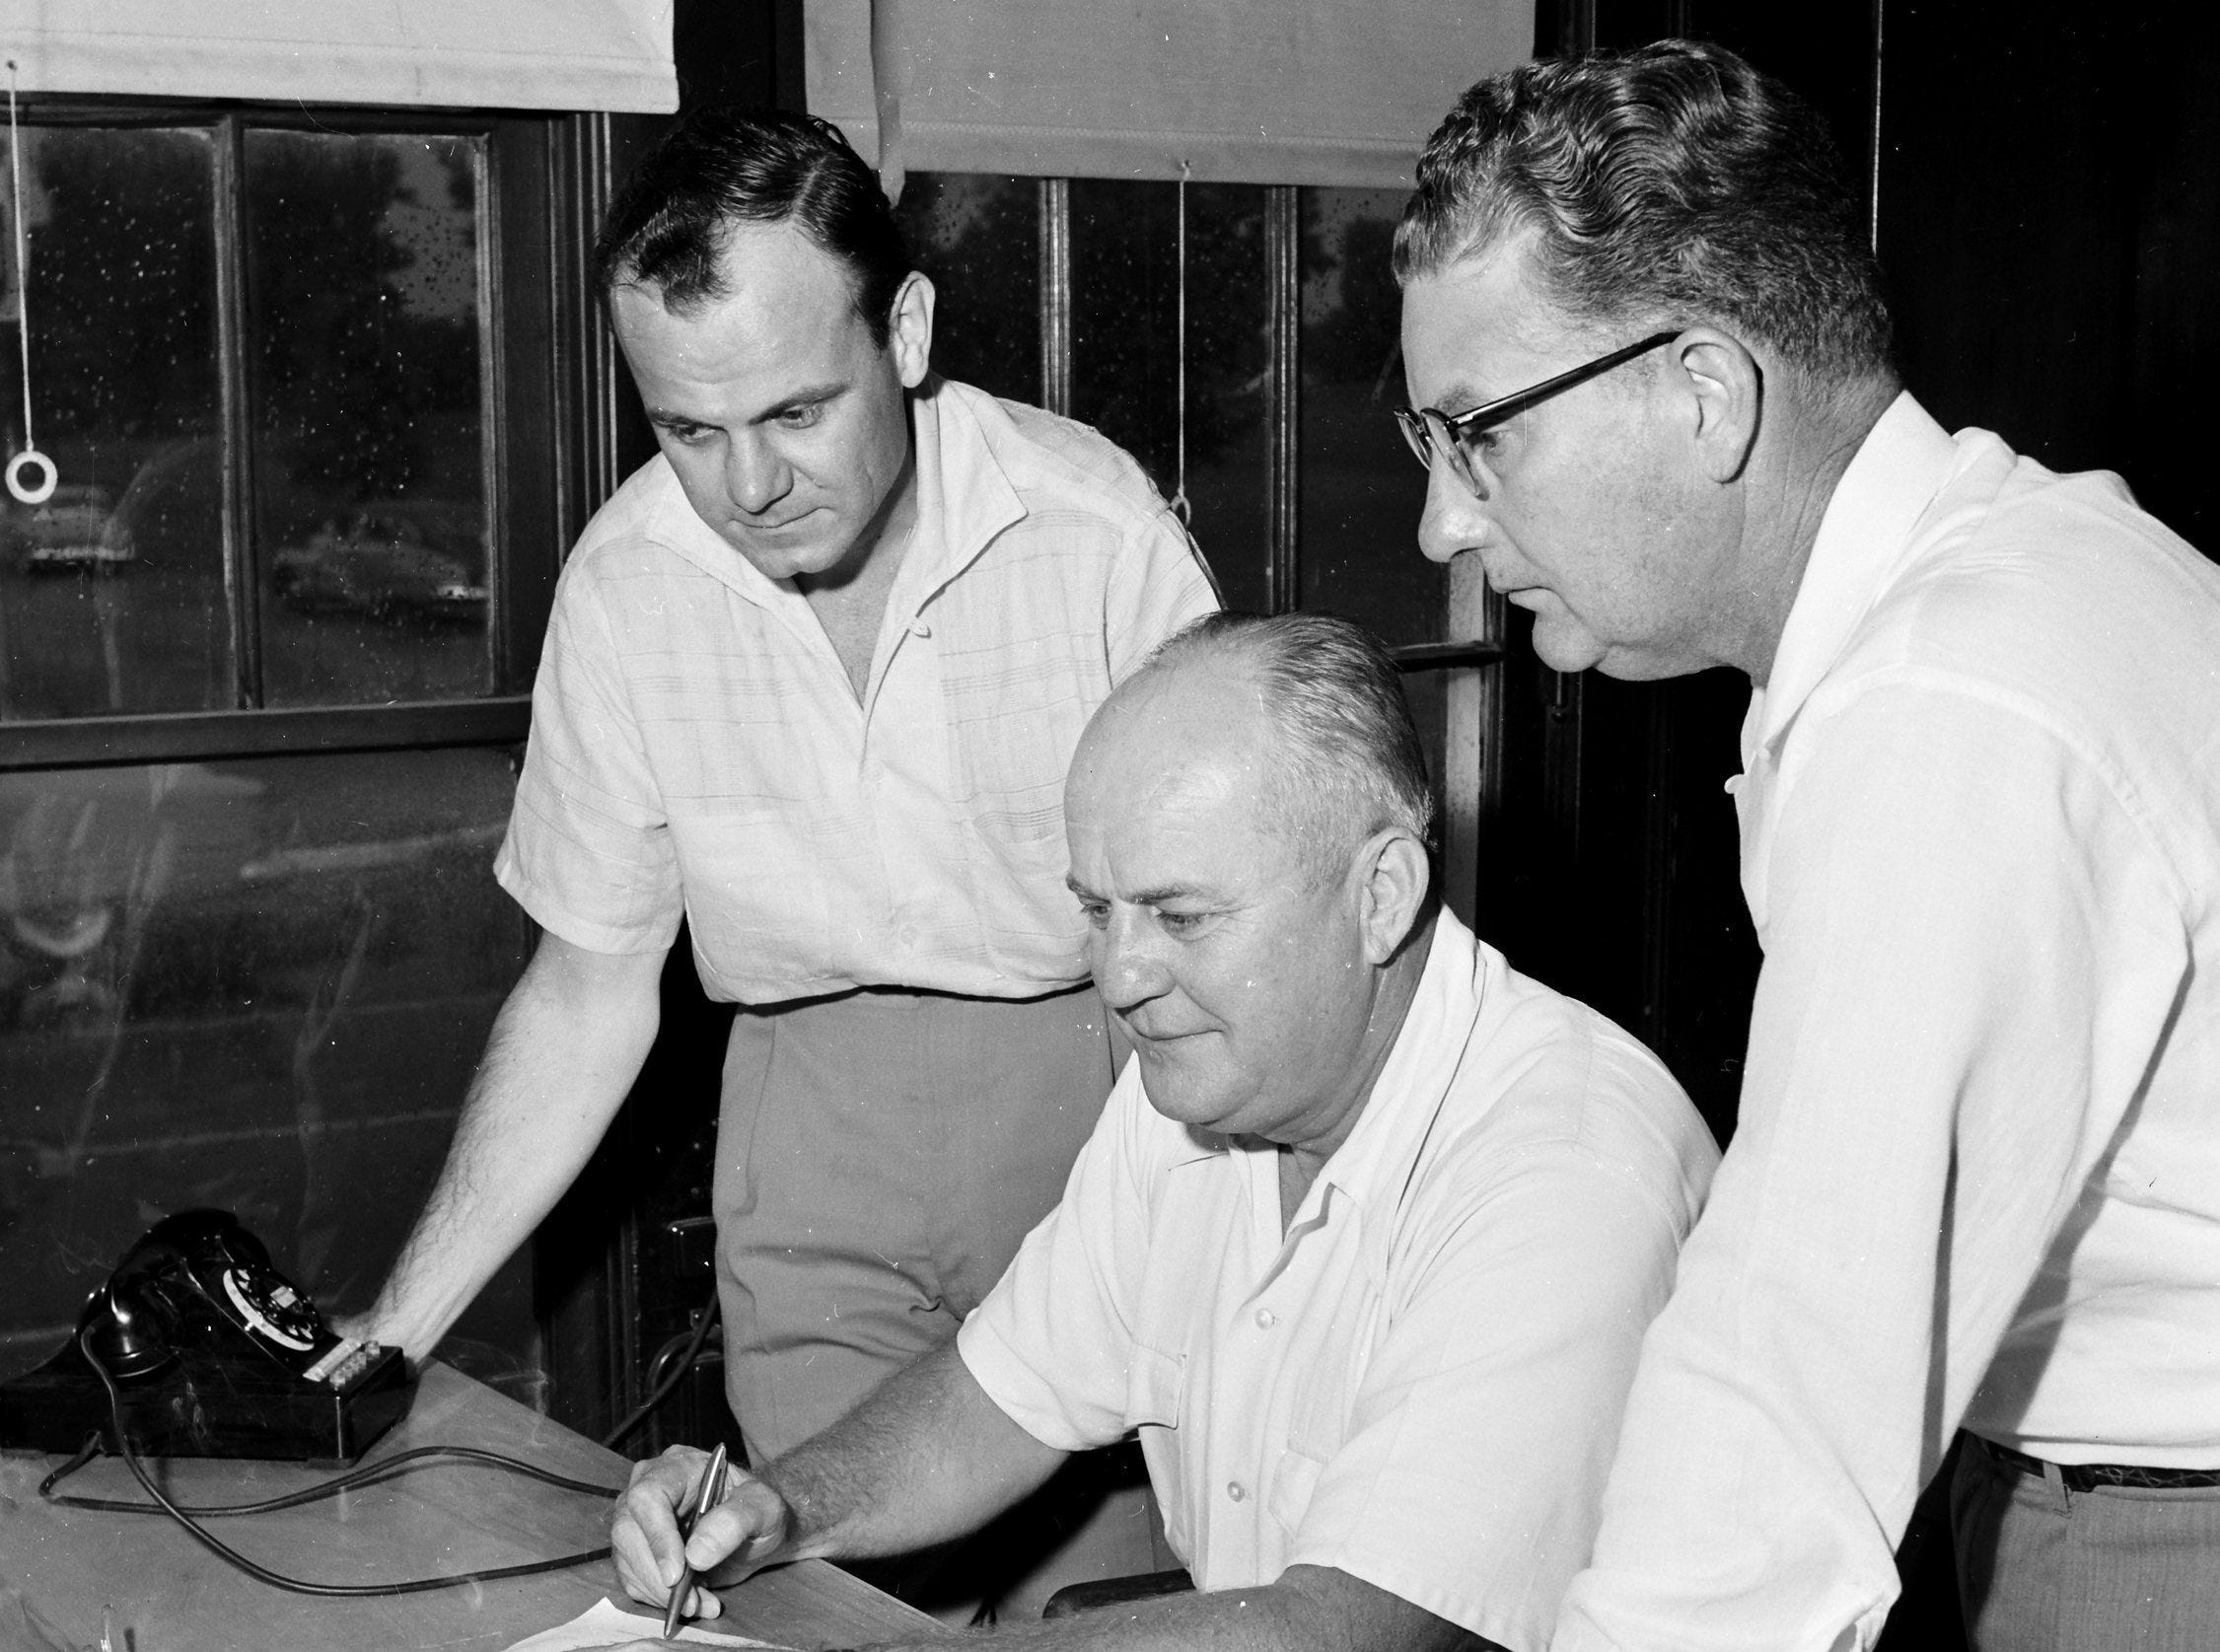 P.A. Gates Jr., center, president of Gates Lumber Co., talks over the sale of the company with R.F. Sharp Jr., left, secretary and assistant treasurer of North Memphis Lumber Co., and Max Pinkerton, North Memphis president, which purchased the company. The sale took place in July 1955.